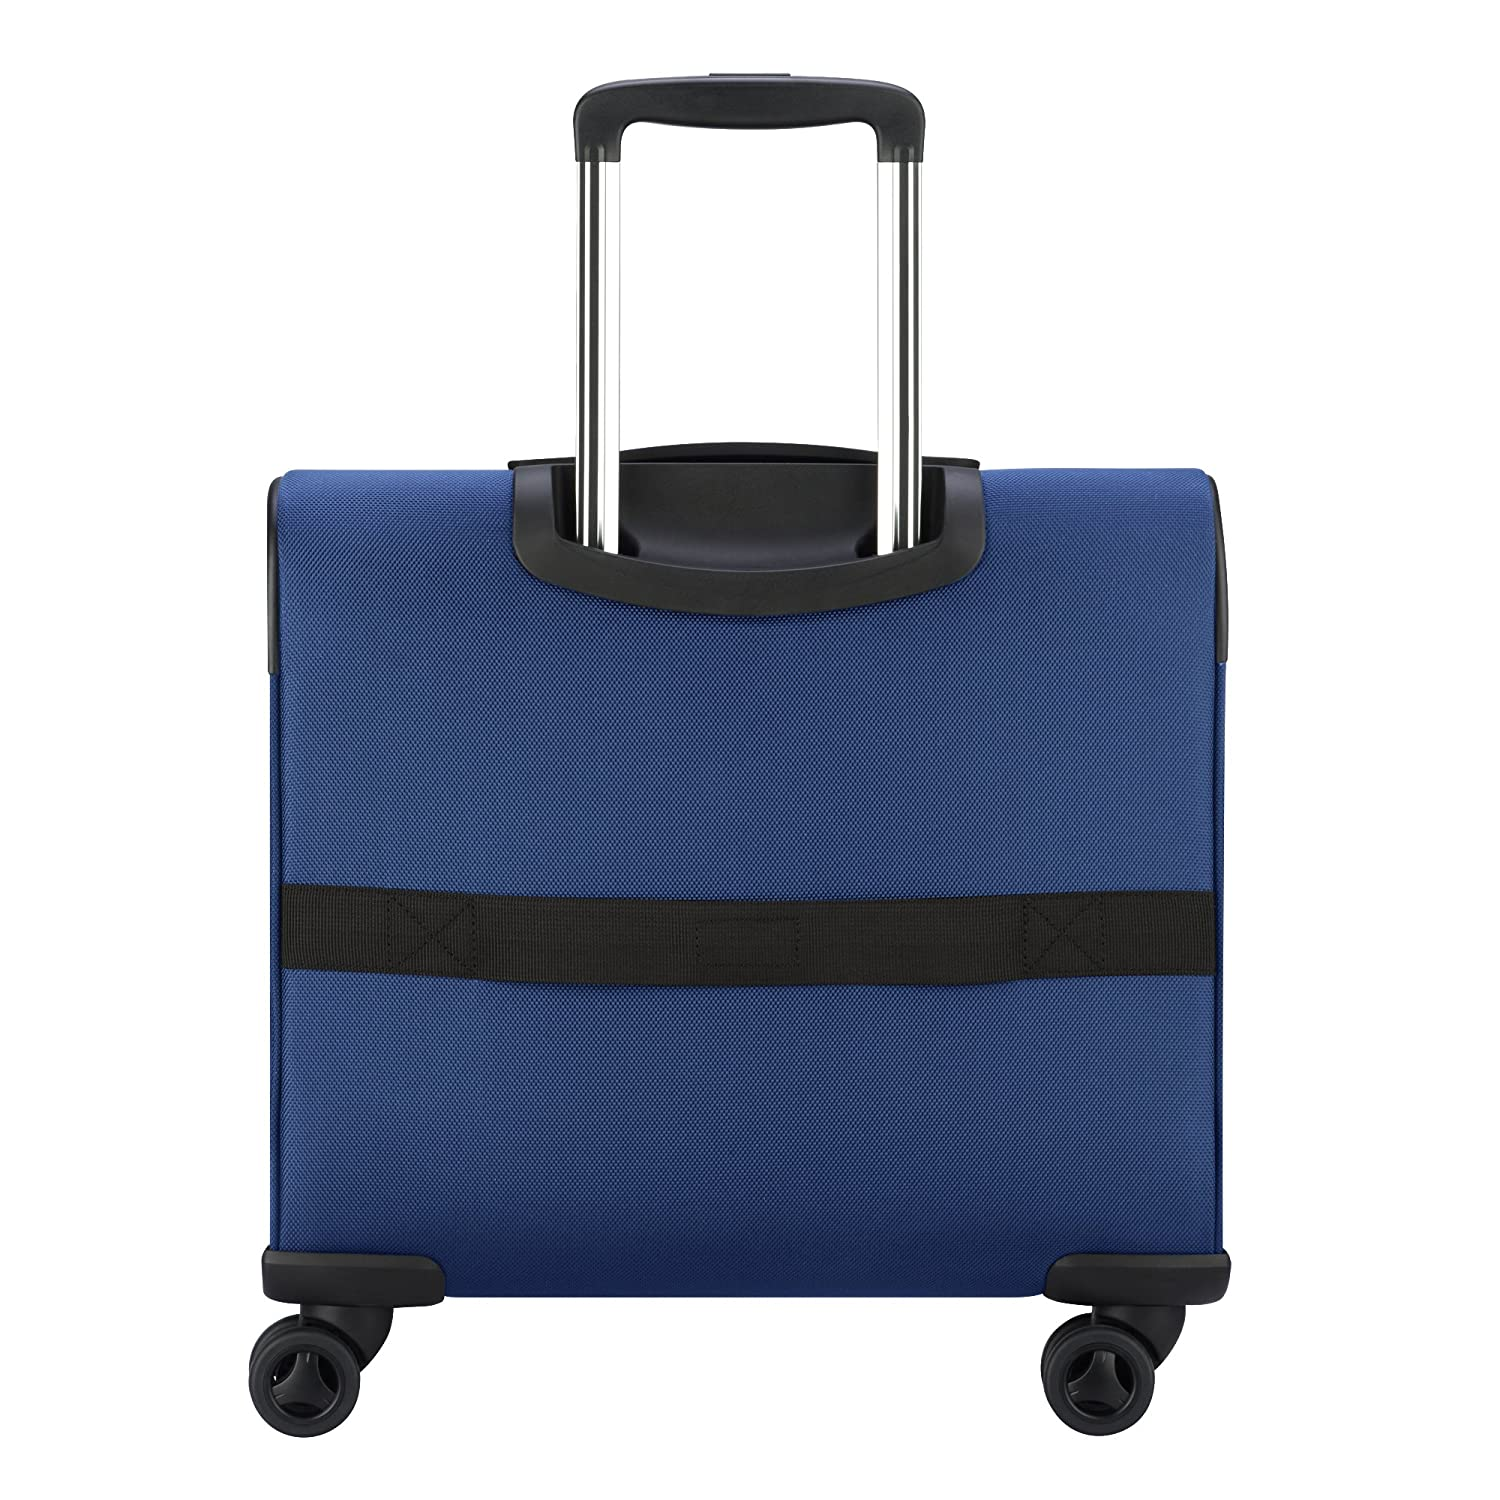 Amazon.com   Delsey Luggage 4 Wheel Spinner Mobile Laptop Briefcase, Blue  One Size   Briefcases a08e9ca41c